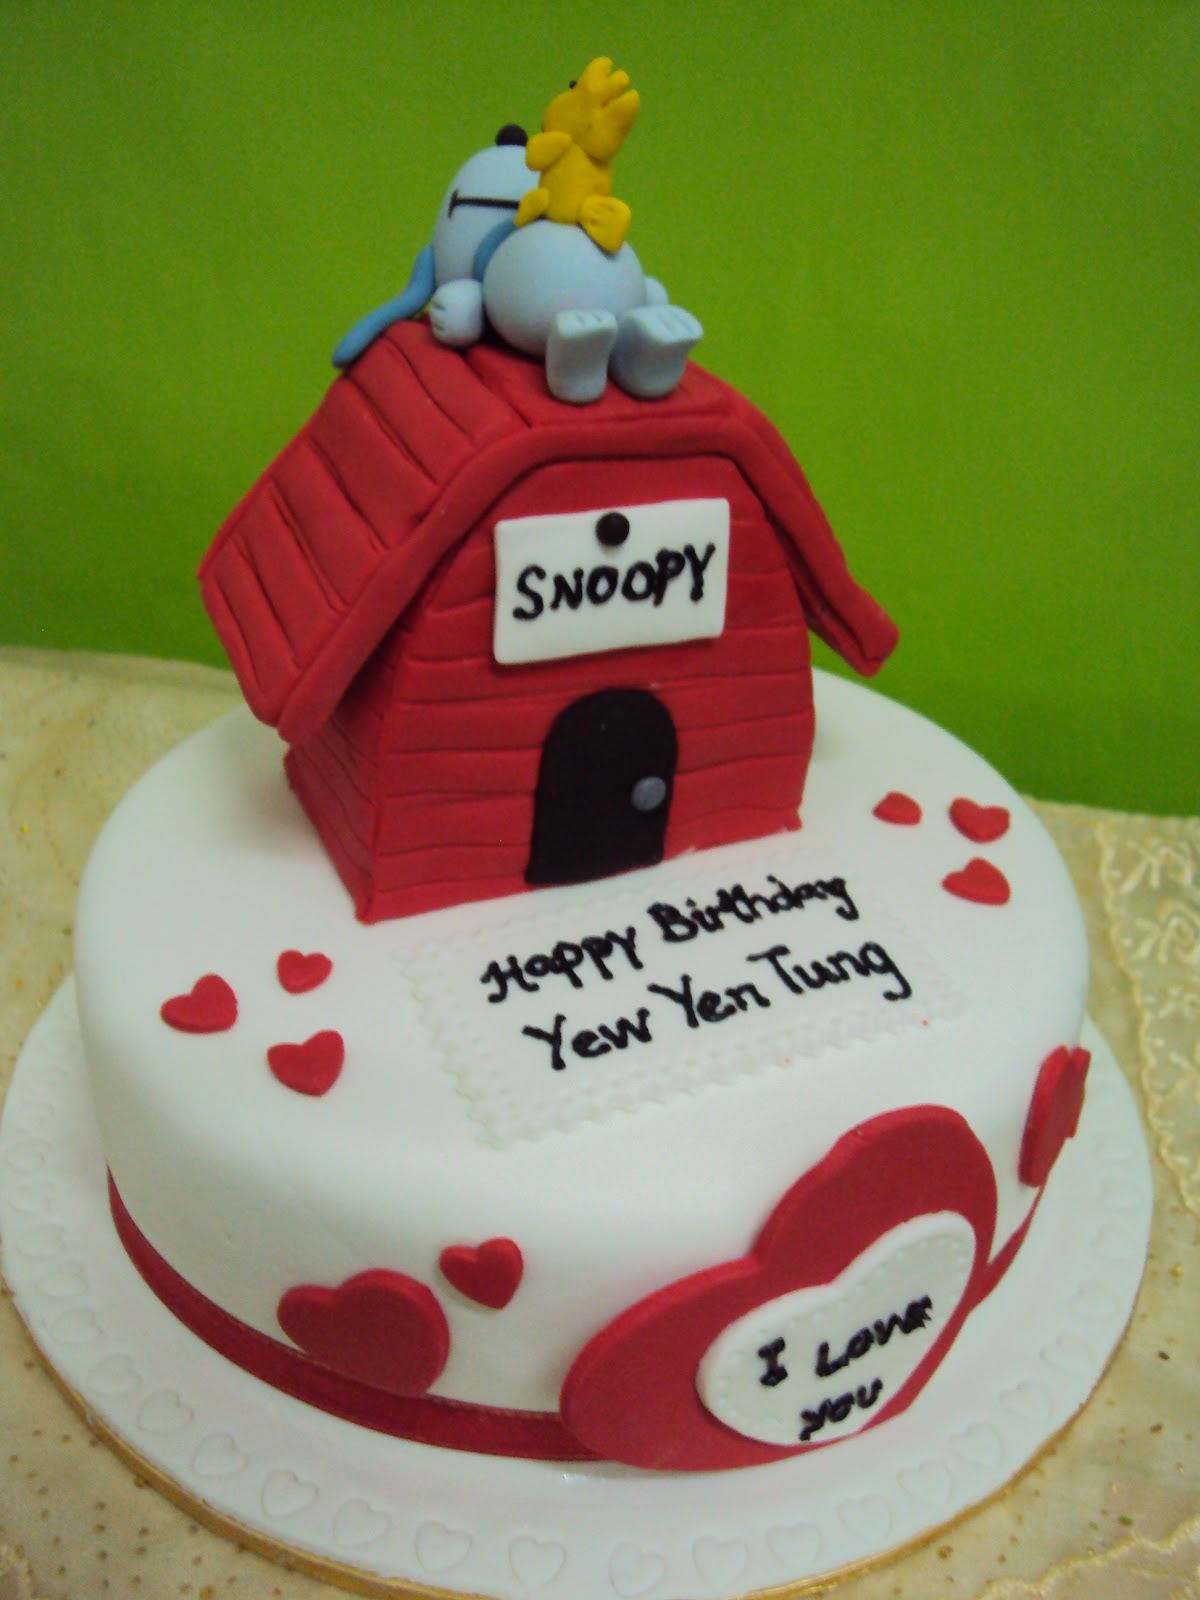 Lmis Cakes Cupcakes Ipoh Contact 0125991233 3D Snoopy Cake